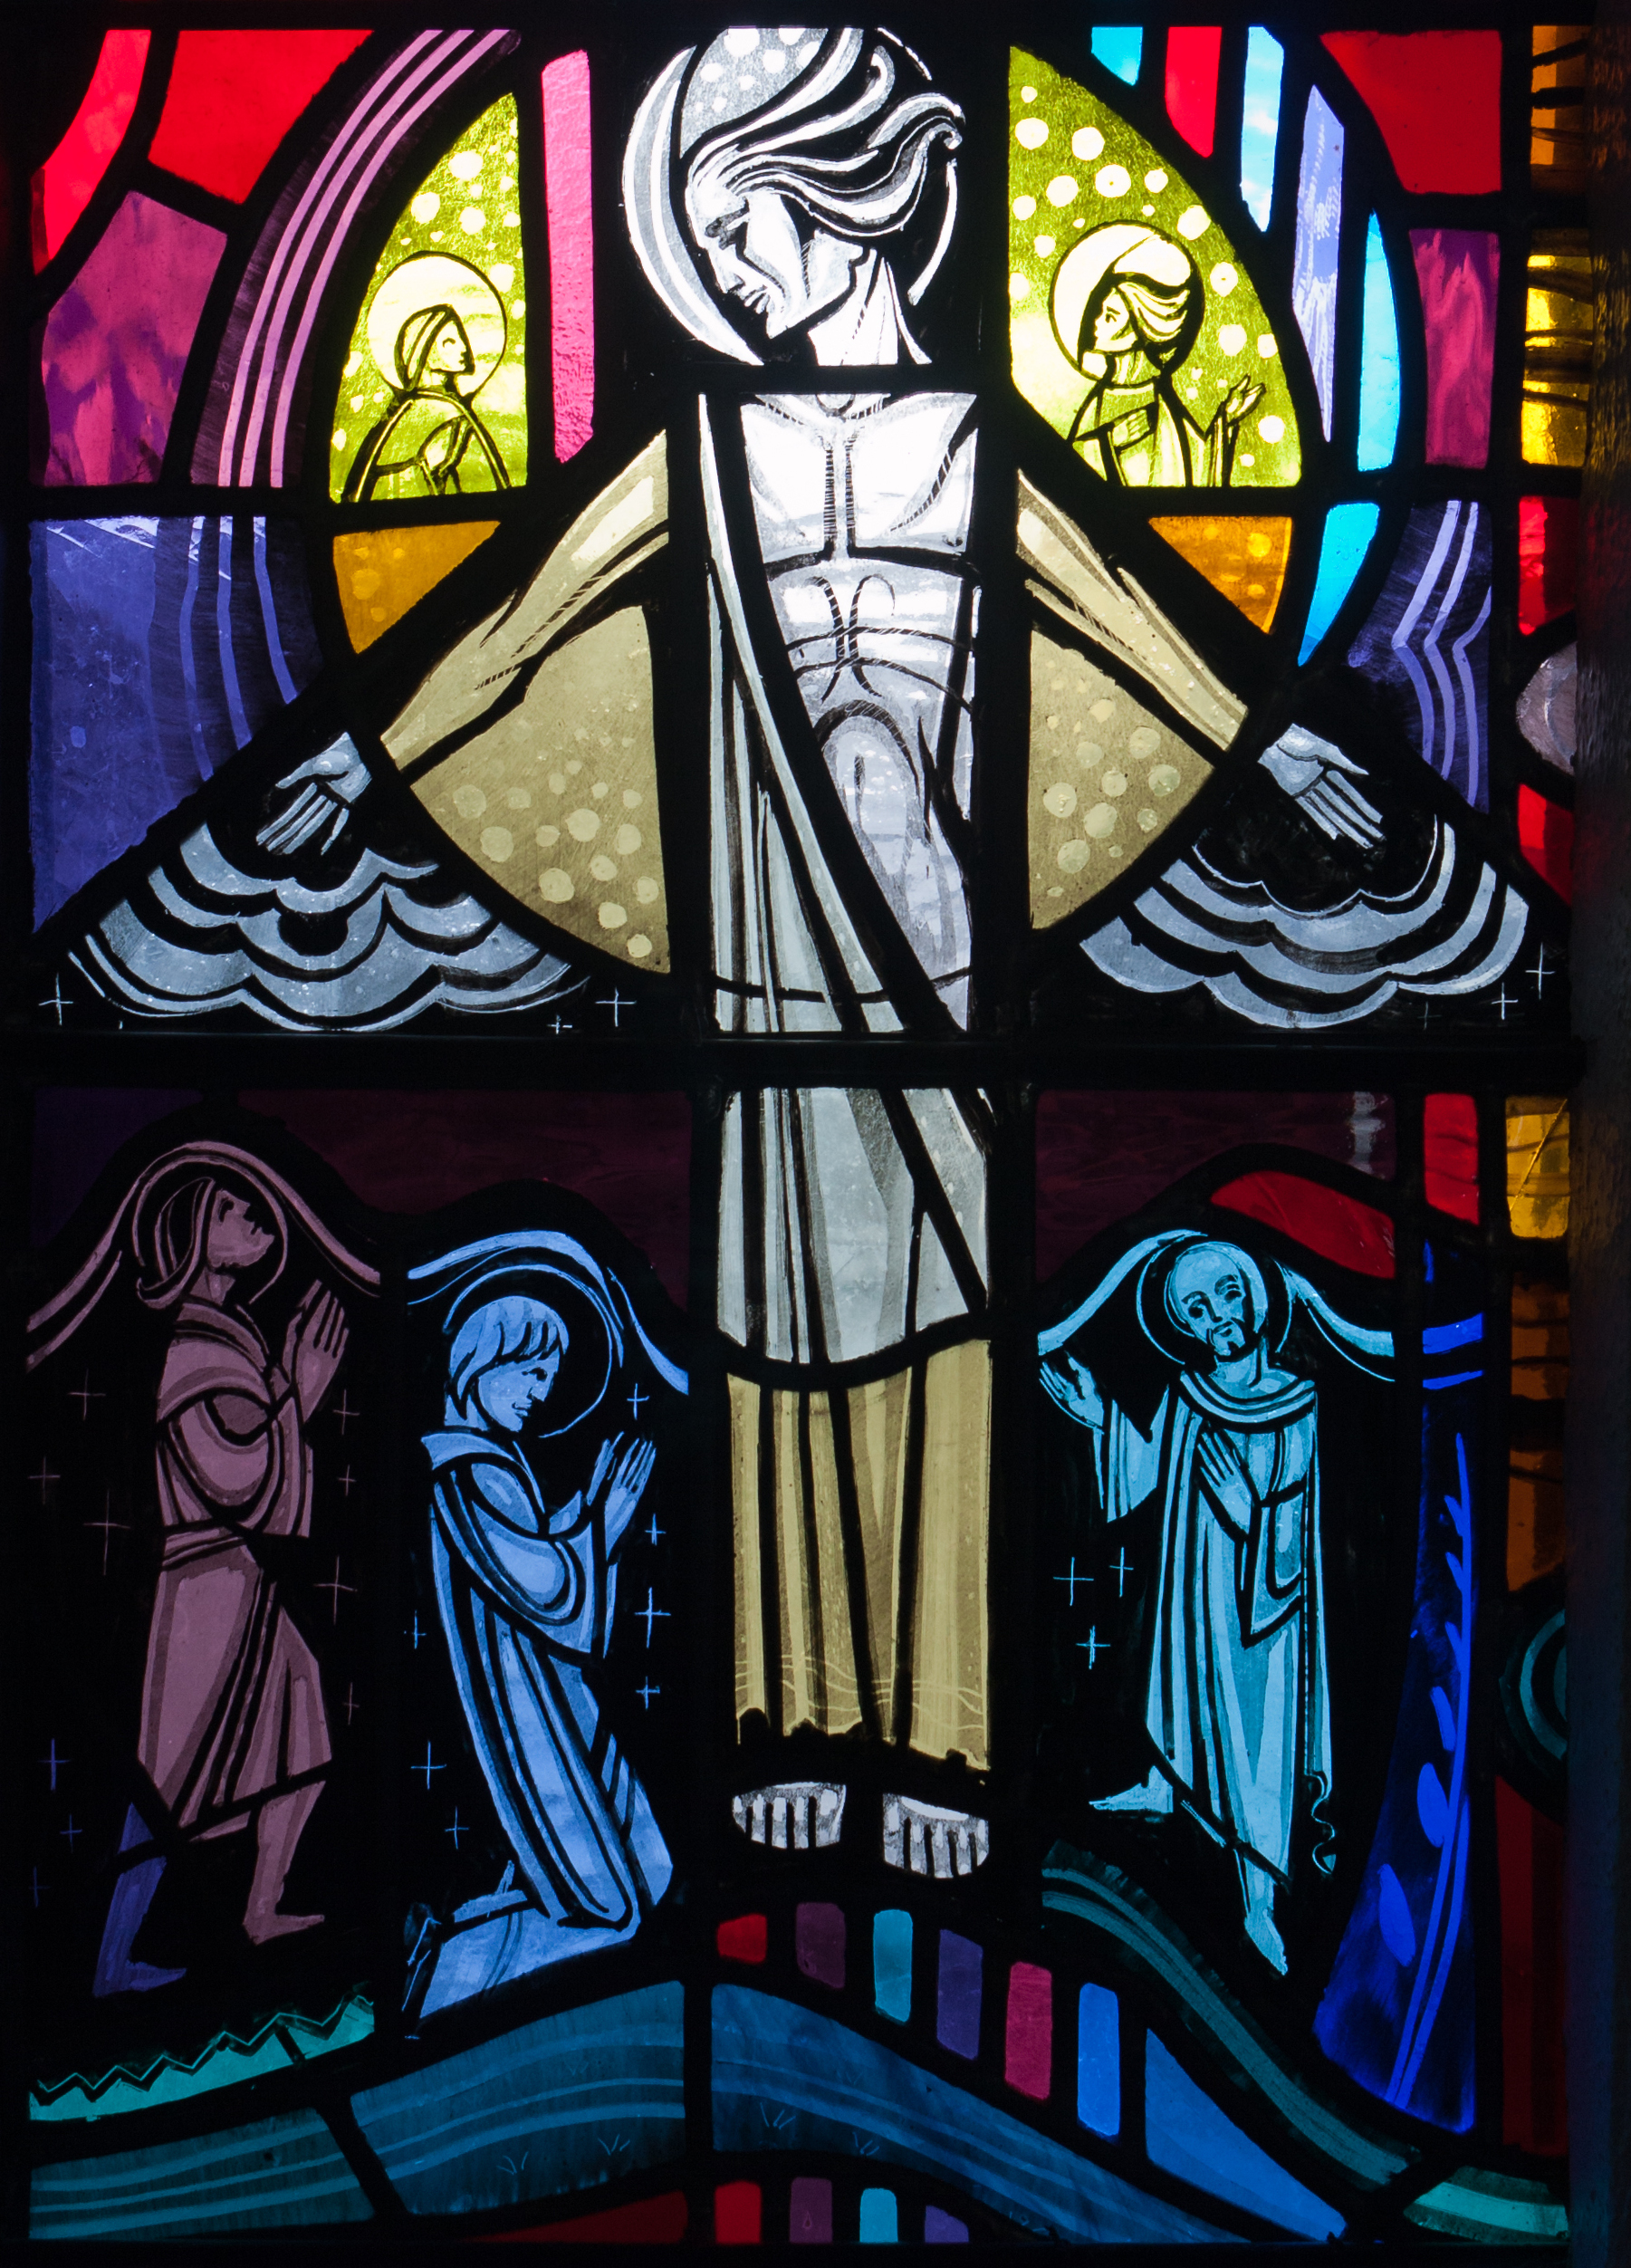 Tullow_Church_of_the_Most_Holy_Rosary_South_Transept_Window_Mysteries_of_Light_and_Pope_John_Paul_II_Detail_Transfiguration_2013_09_06